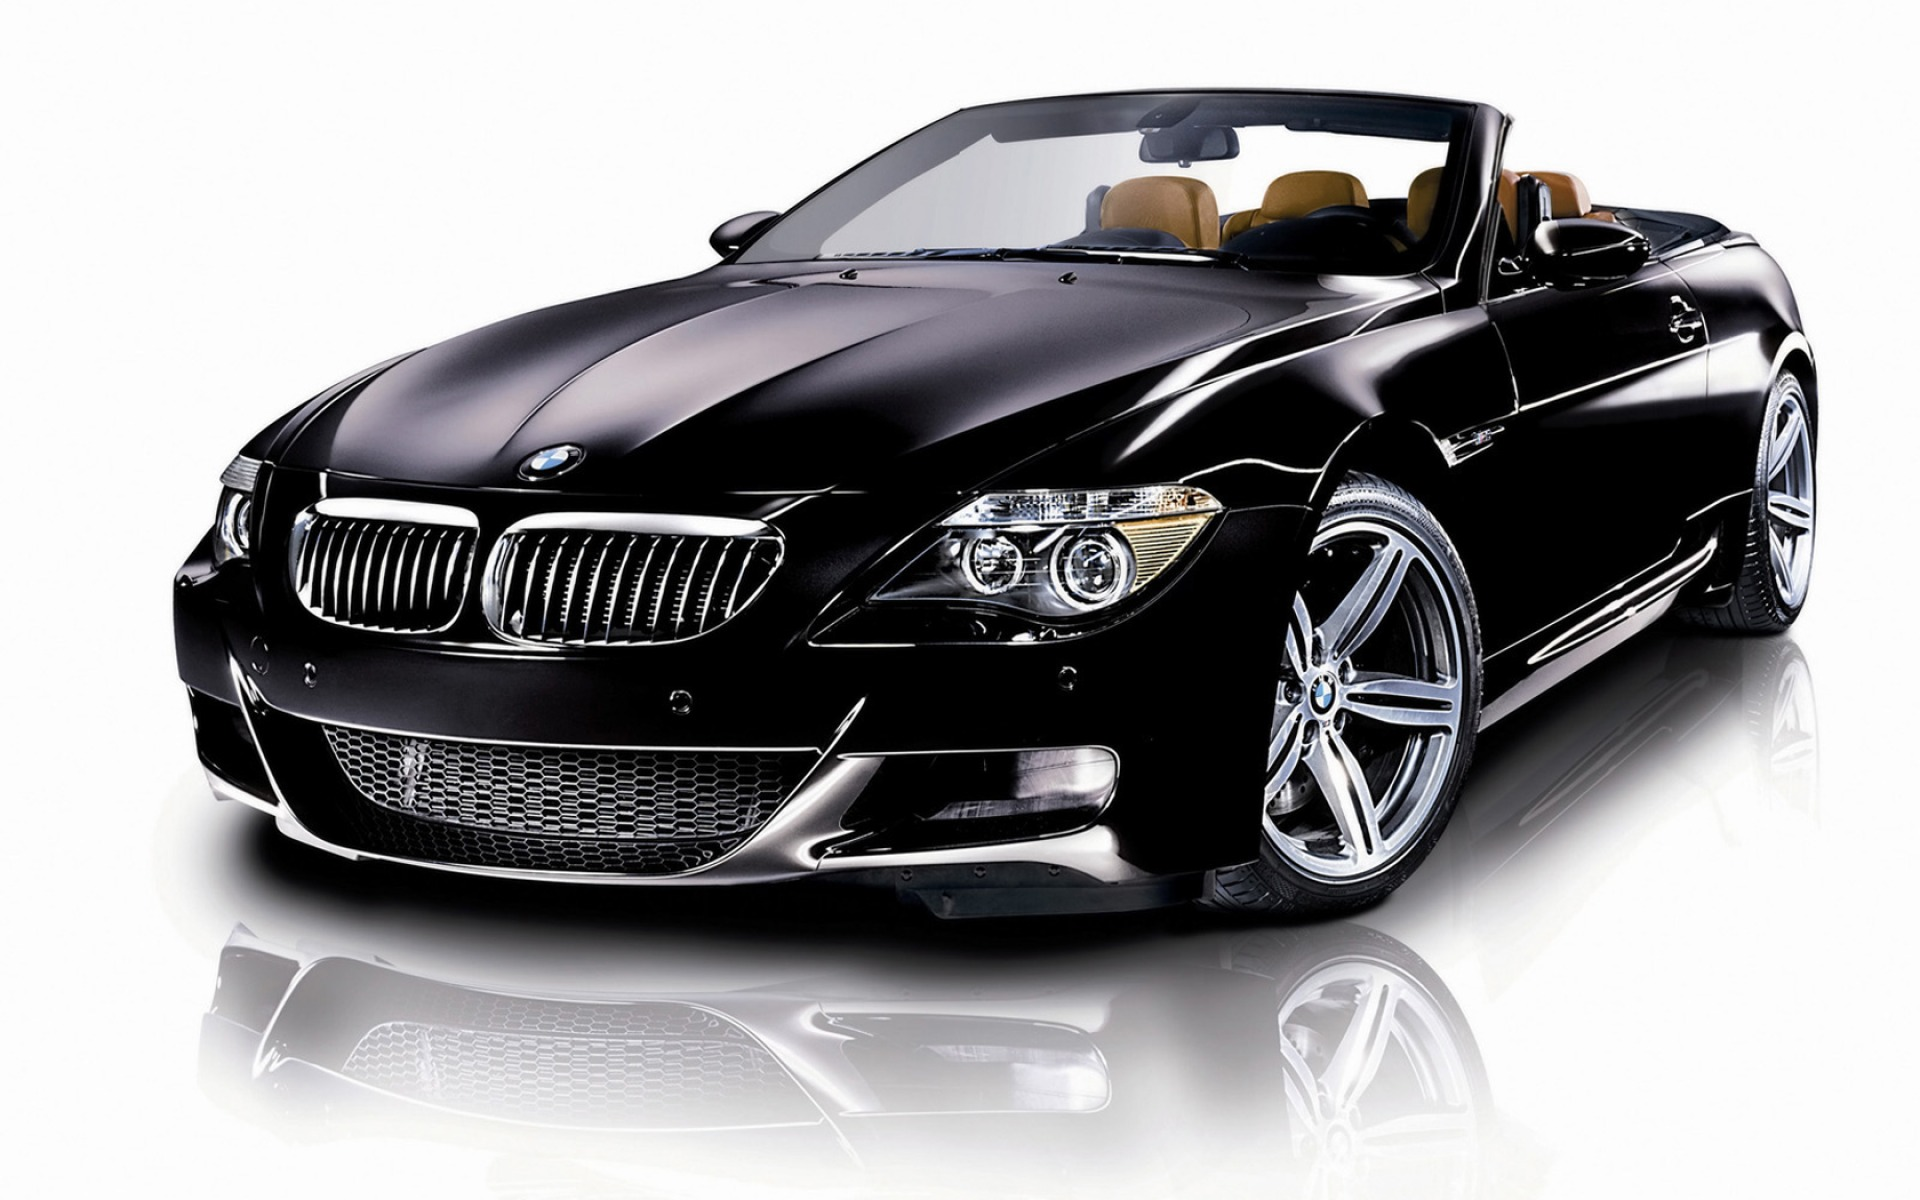 Ultrablogus  Pleasing Bmw Car Wallpaper Wallpapers For Free Download About   With Inspiring Bmw M Convertible Wallpaper Bmw Cars With Agreeable Interior Toyota Corolla  Also Hummer H Interior Lights In Addition  Mustang Interior And Liberty Interiors As Well As Vinyl Paint Car Interior Additionally Karmann Ghia Interior From Allfreedownloadcom With Ultrablogus  Inspiring Bmw Car Wallpaper Wallpapers For Free Download About   With Agreeable Bmw M Convertible Wallpaper Bmw Cars And Pleasing Interior Toyota Corolla  Also Hummer H Interior Lights In Addition  Mustang Interior From Allfreedownloadcom